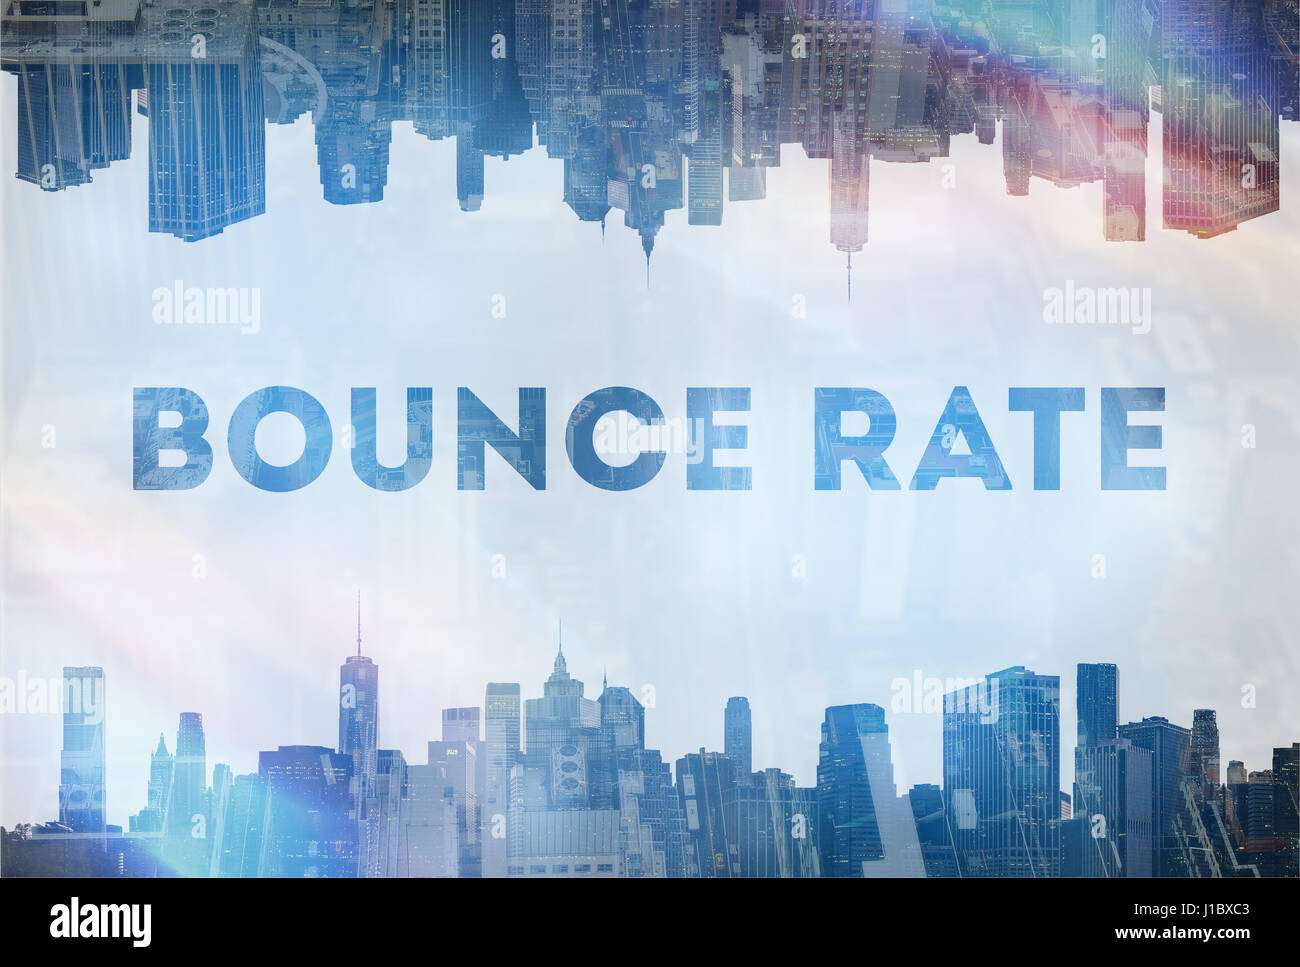 Bounce Rate concept image - Stock Image